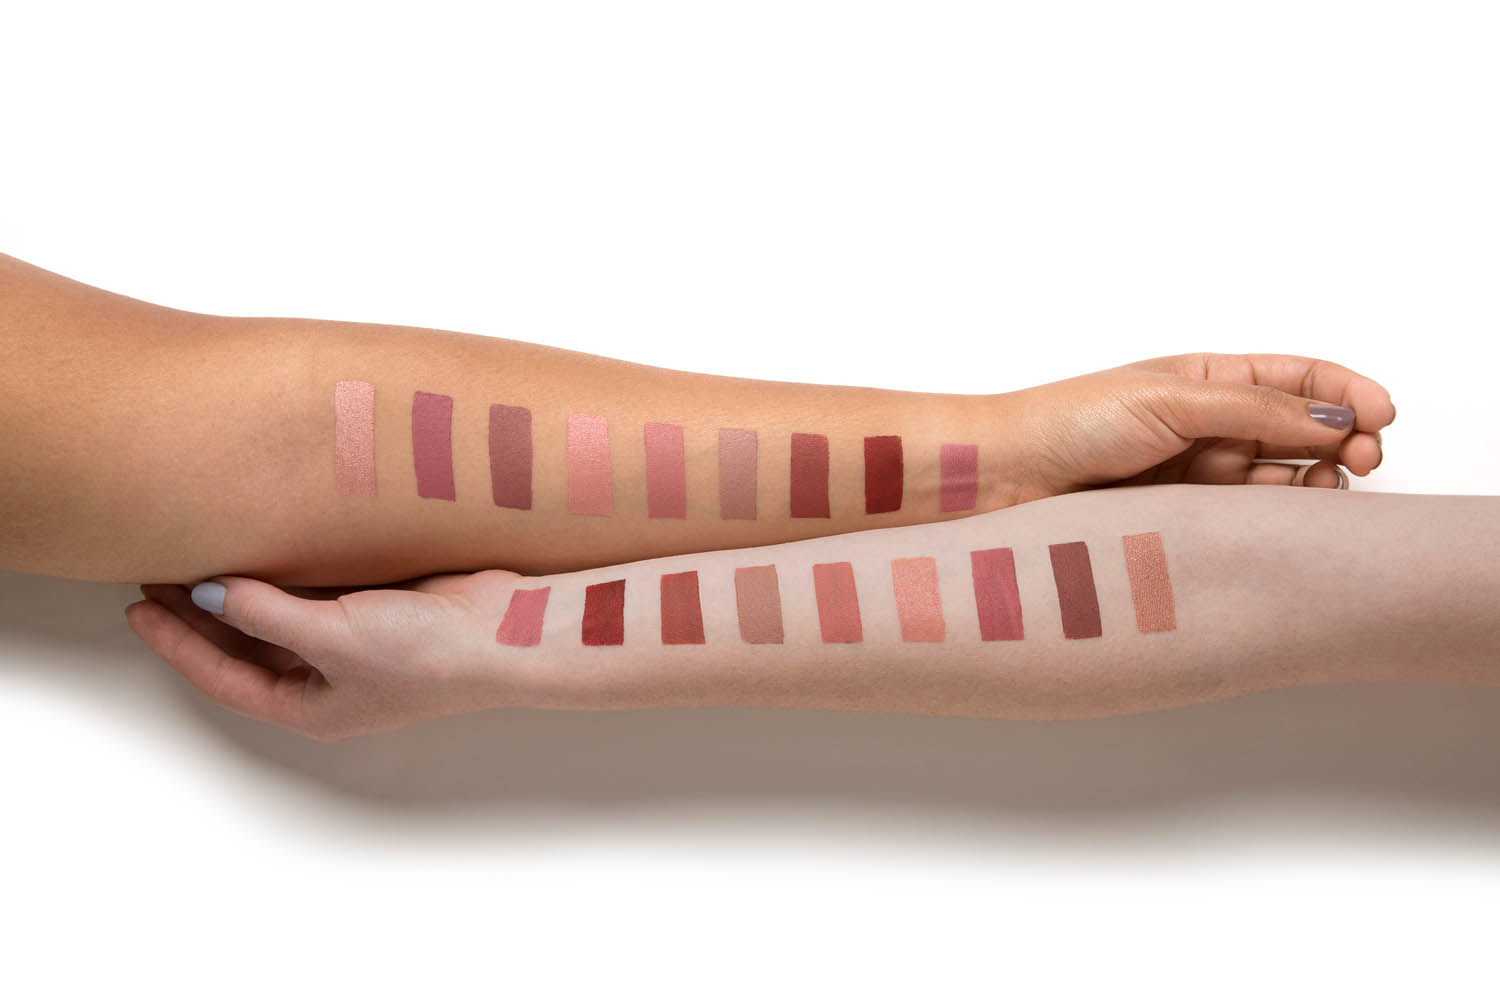 Arm swatches show the different POWERLips Fluid